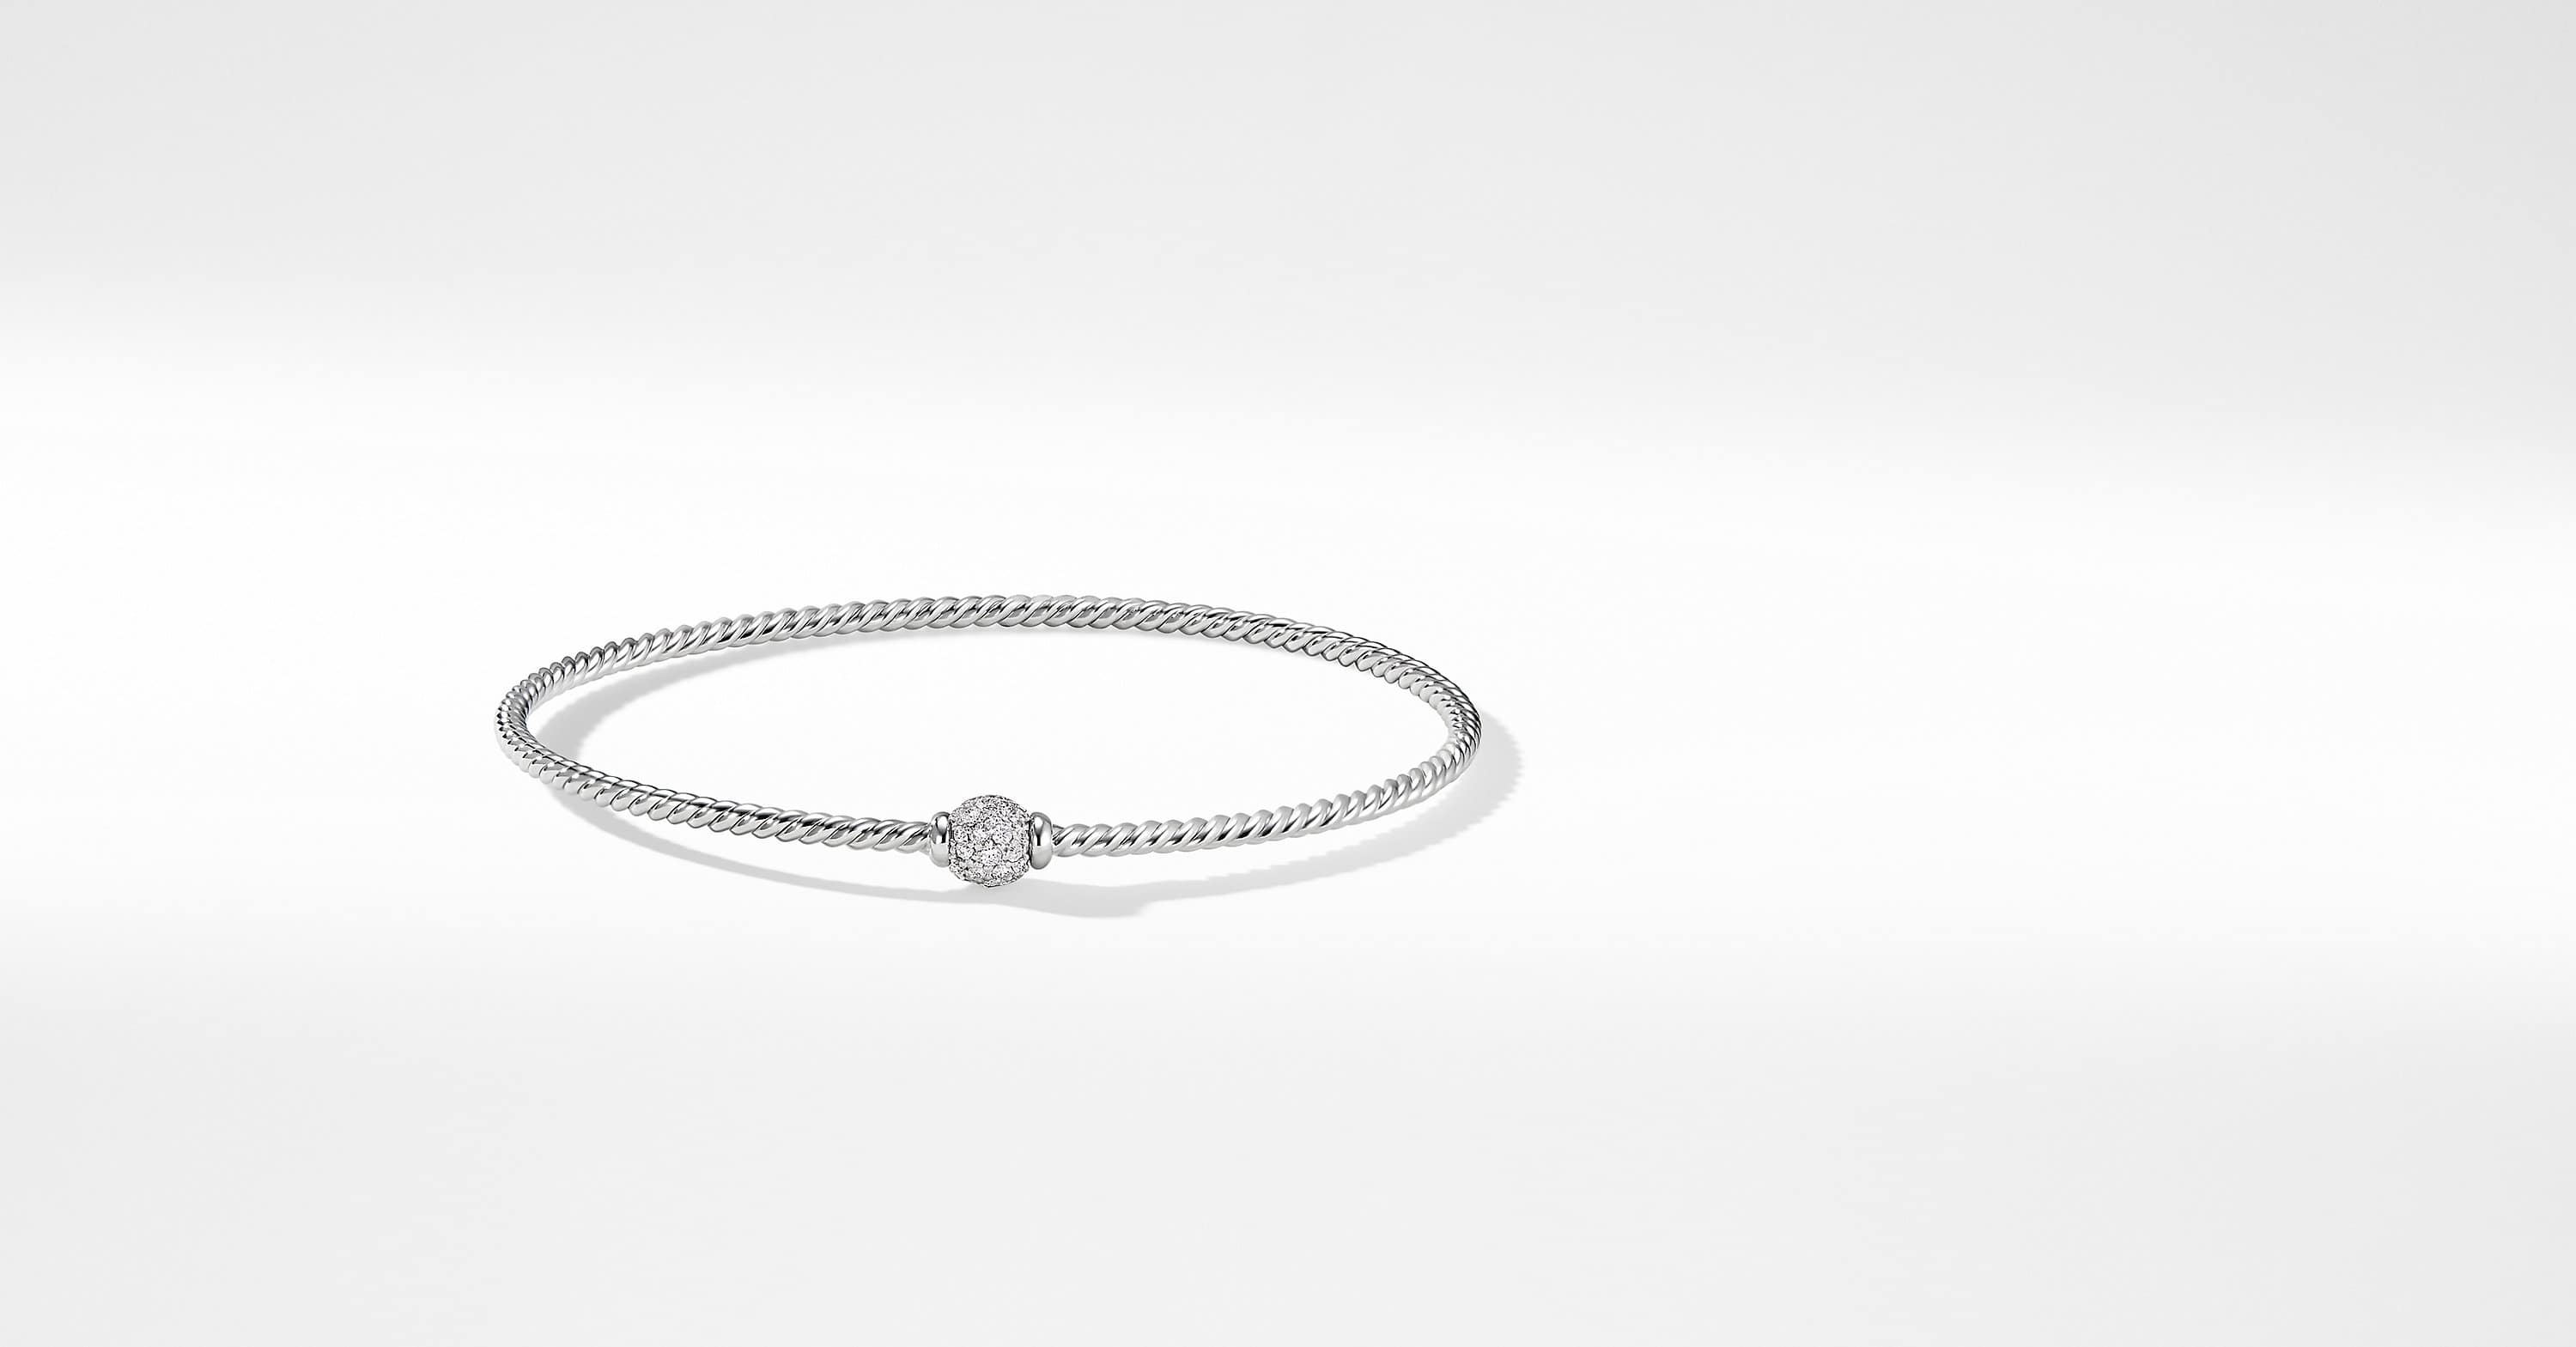 Petite Solari Station Pave Bracelet with Diamonds in 18K White Gold